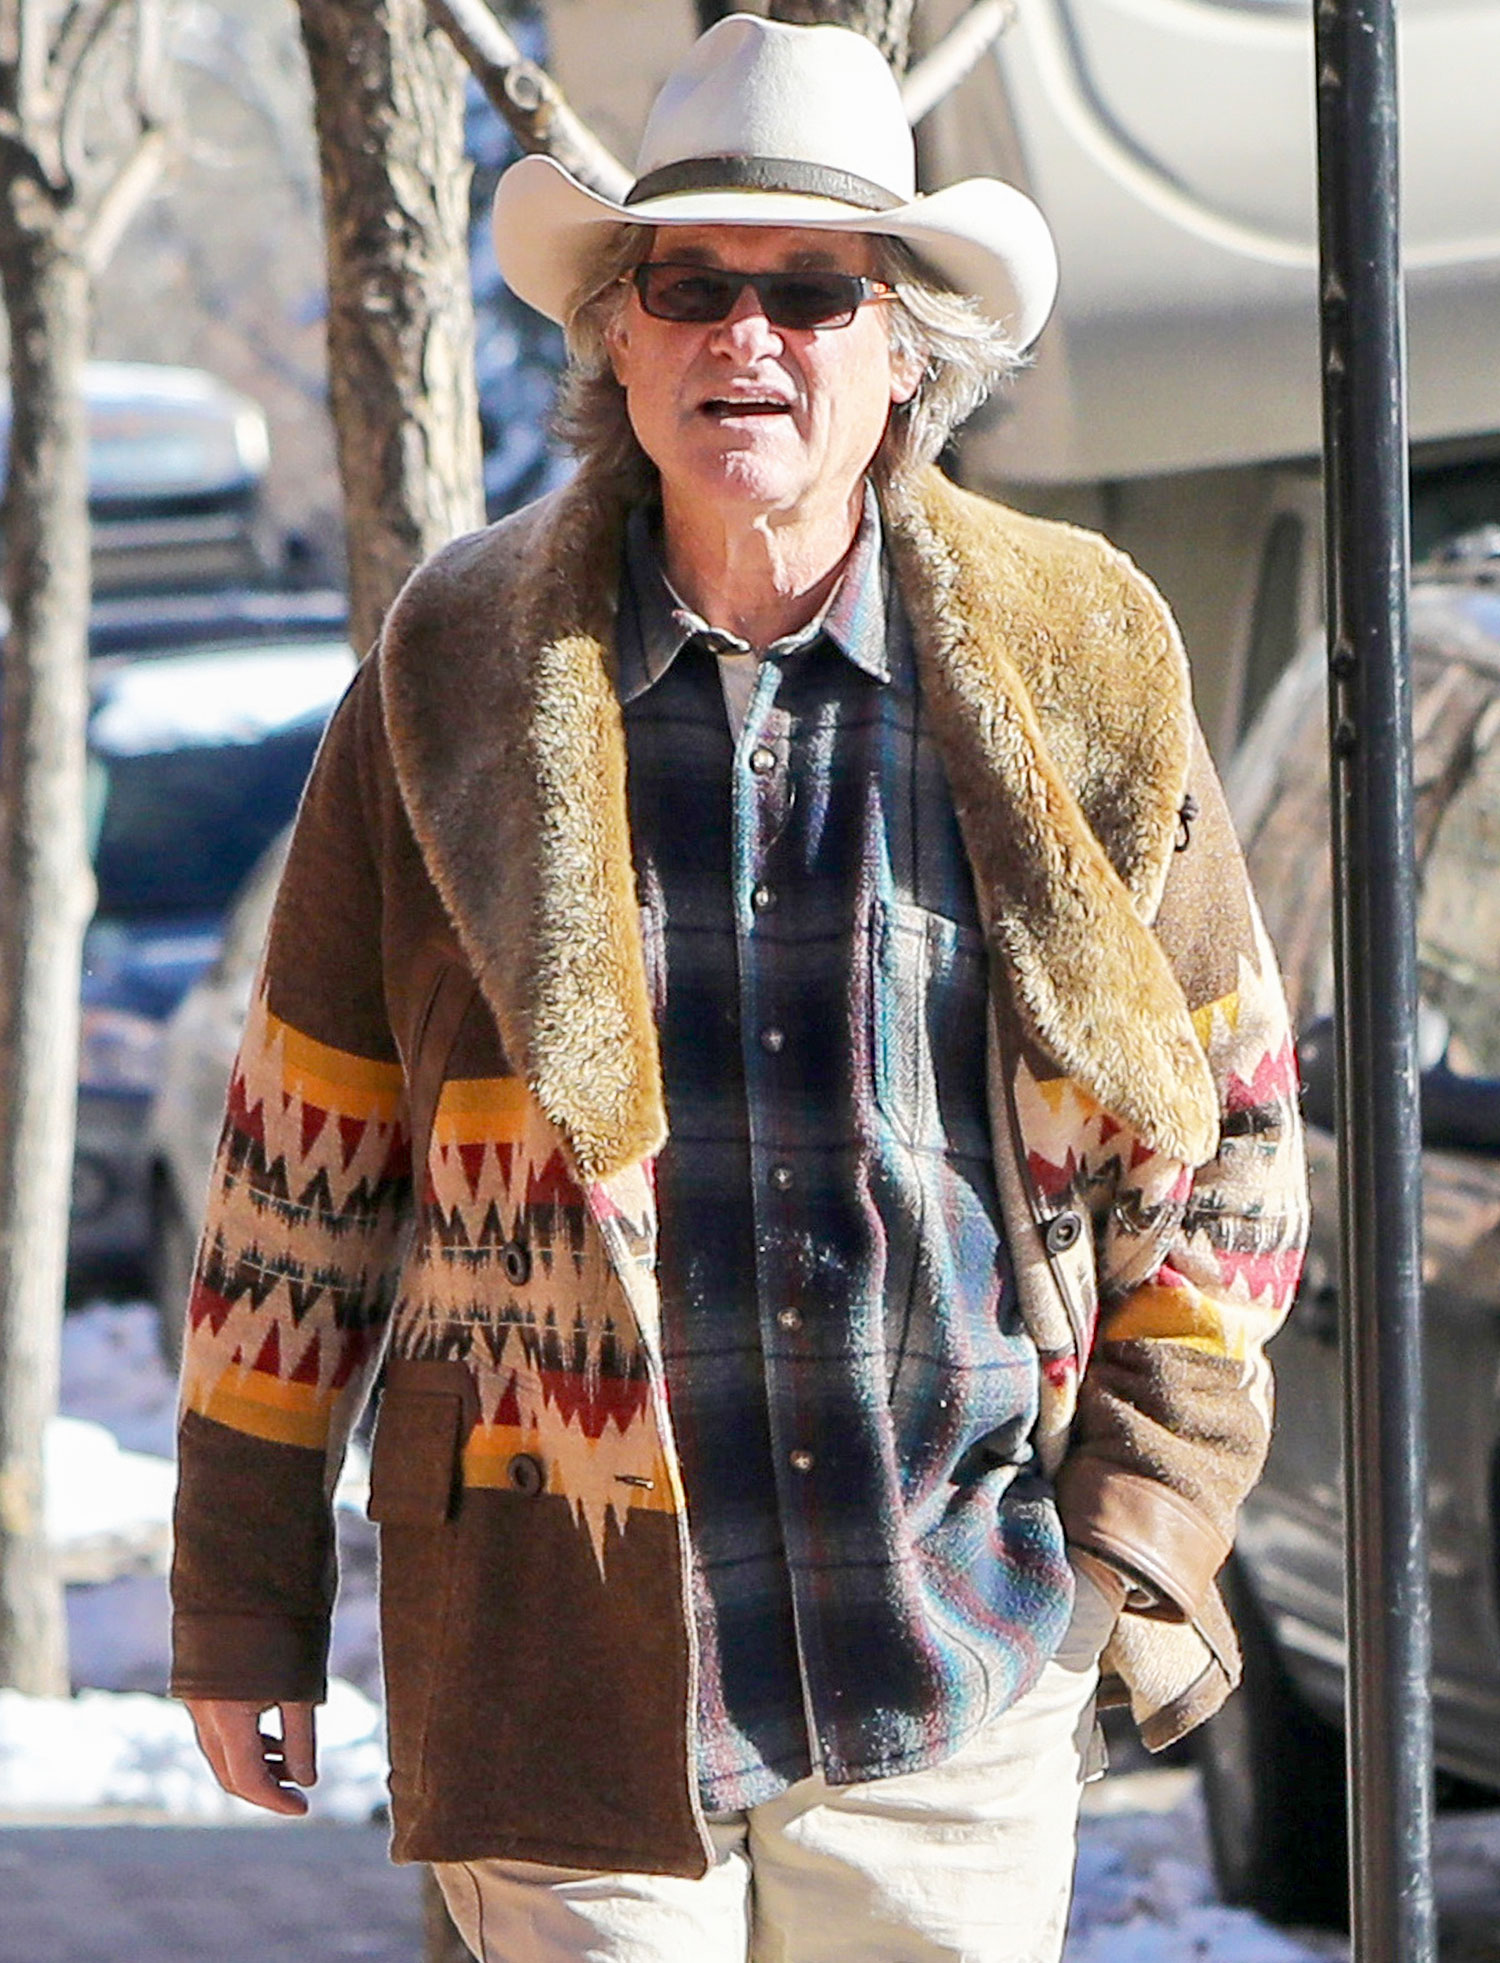 *EXCLUSIVE* Kurt Russell grabs a few last minute items on Christmas eve